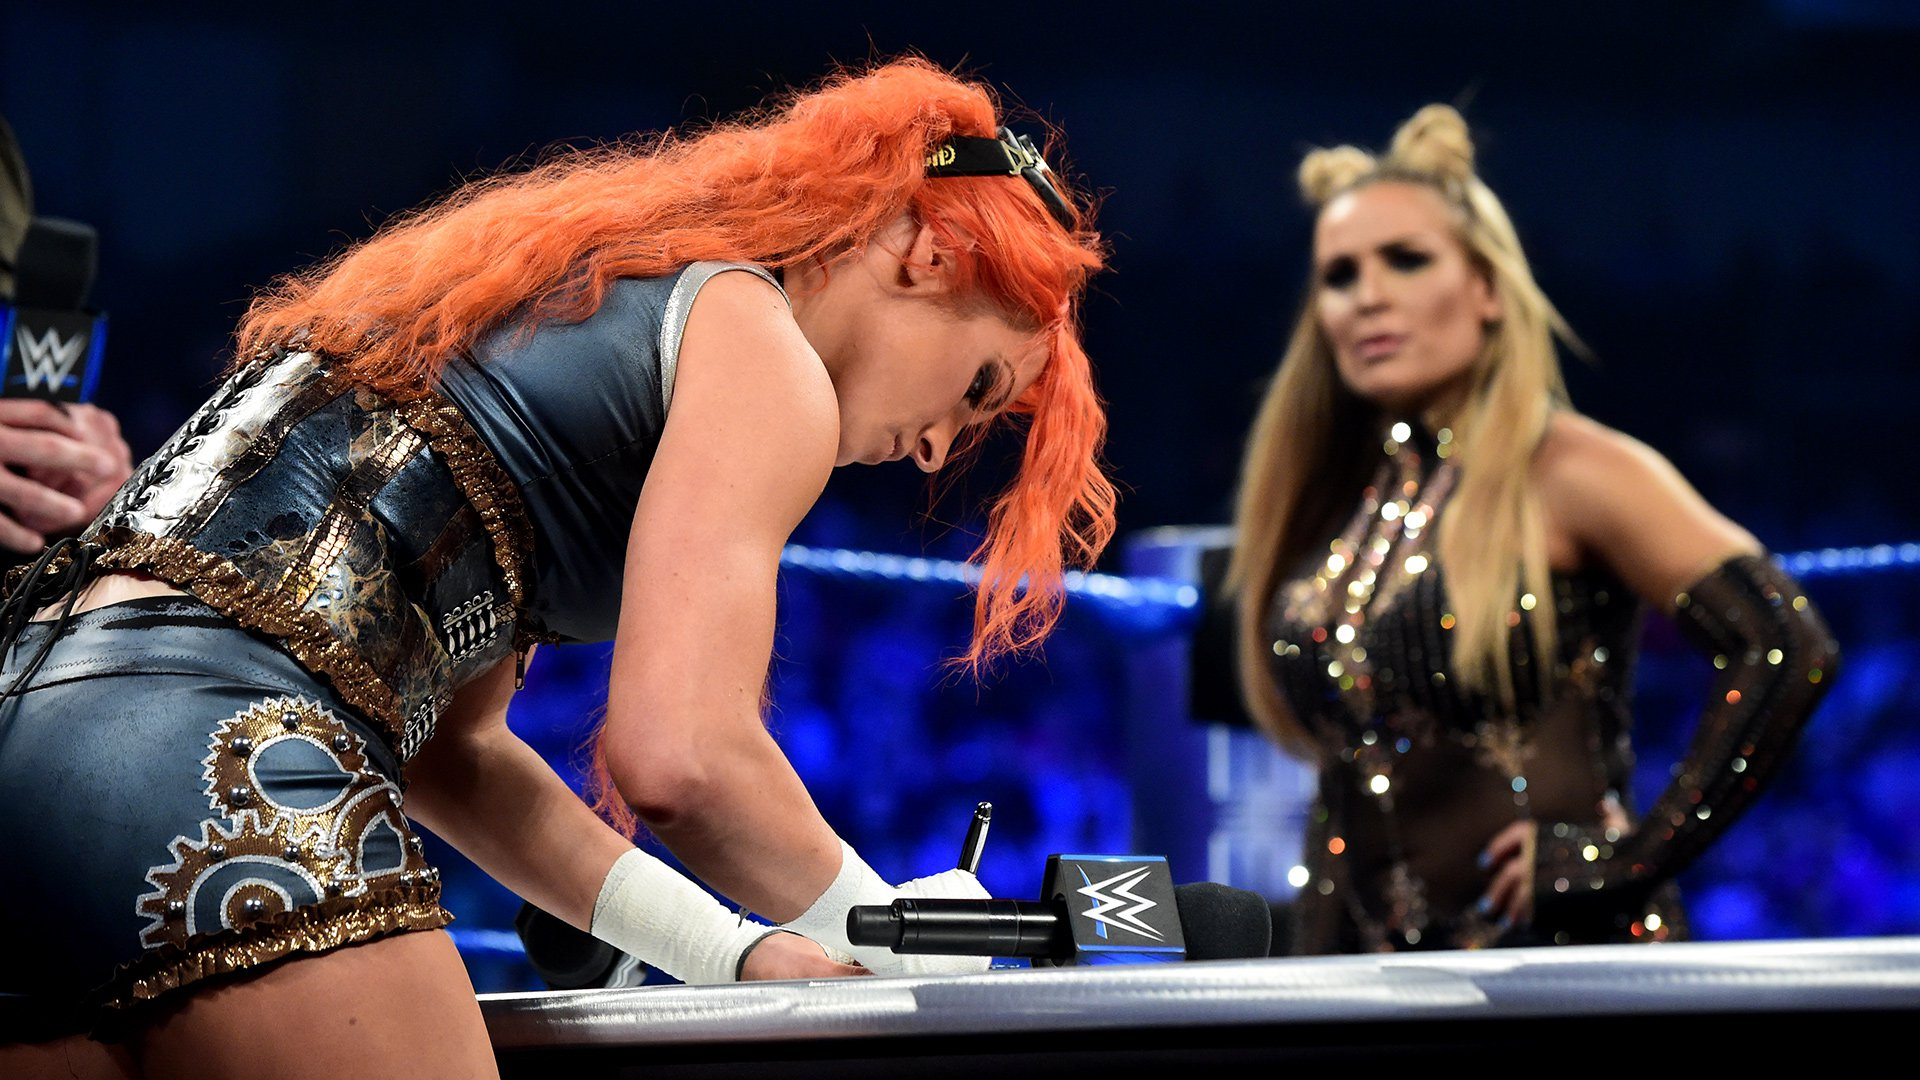 ... and she signs the contract for WWE Backlash this Sunday.